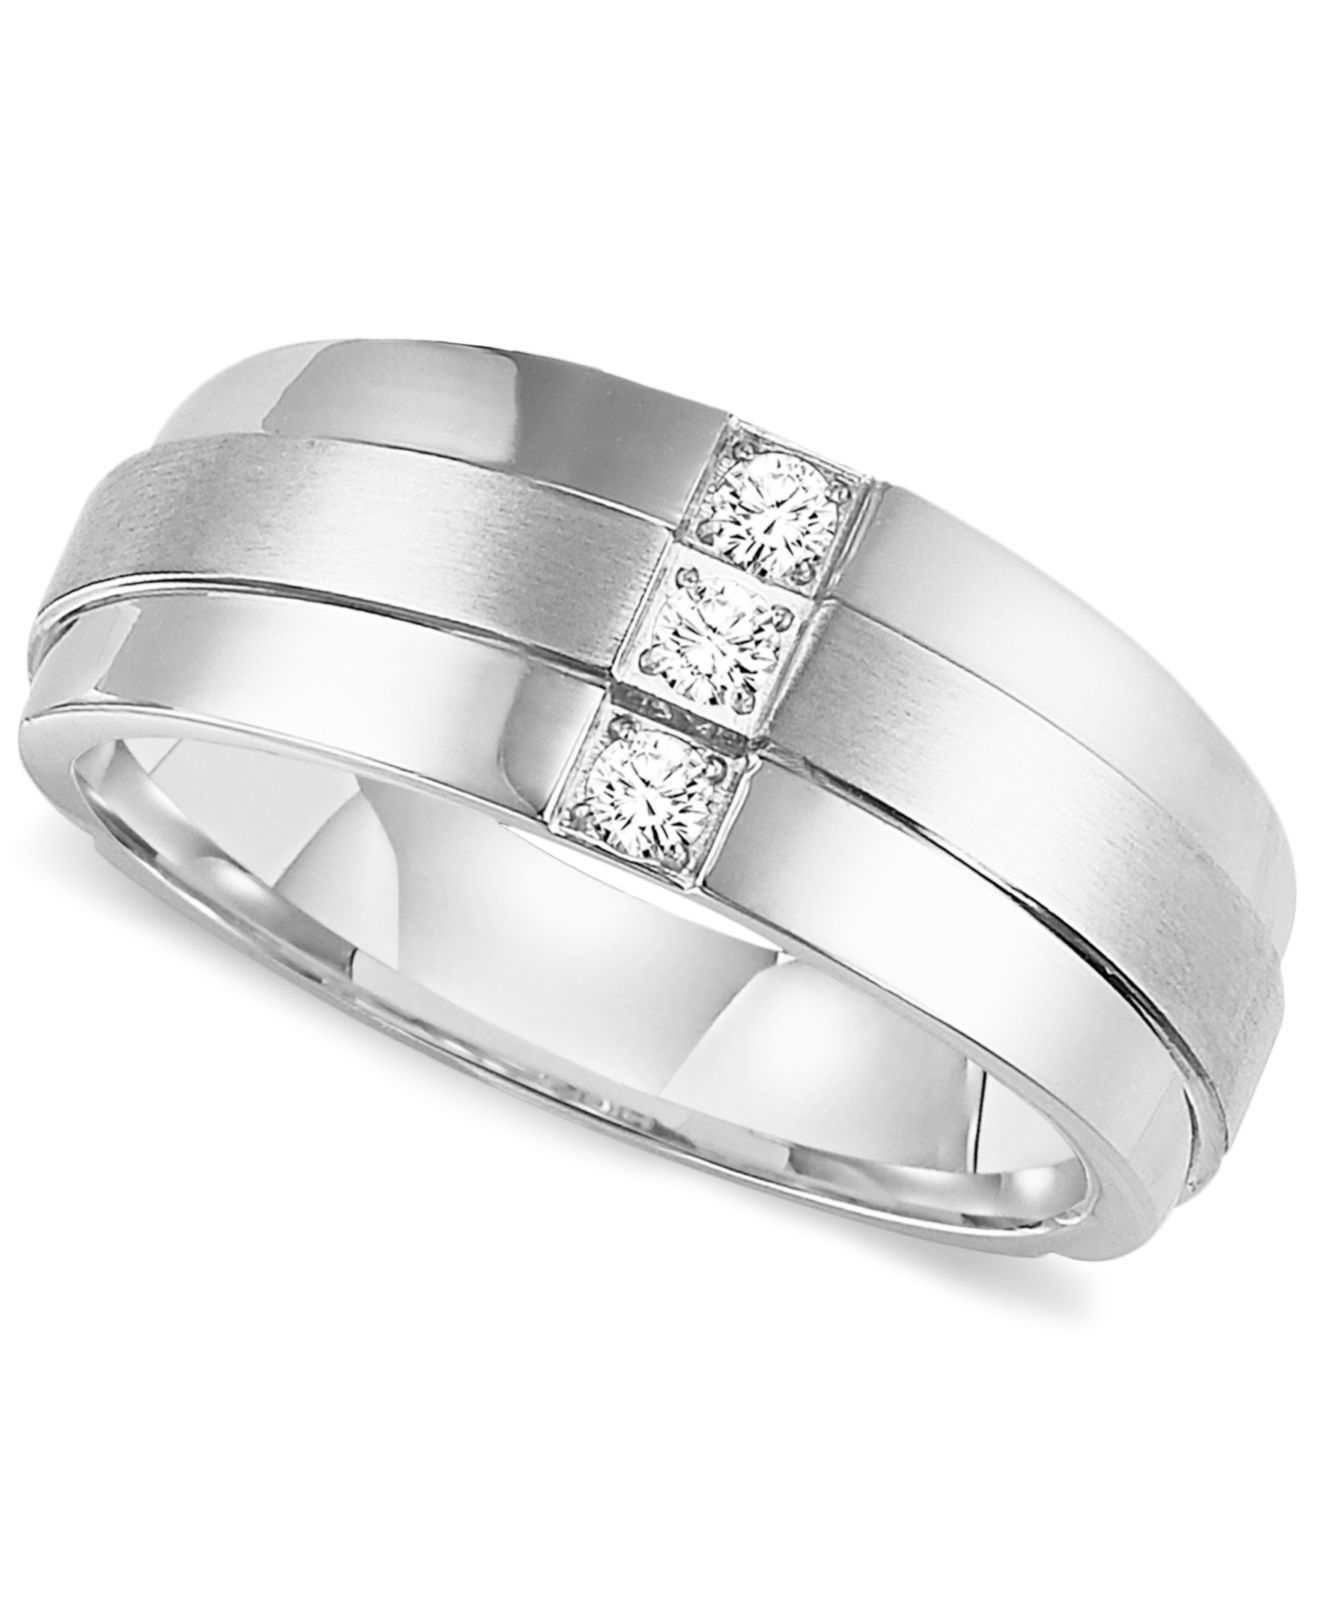 Triton men39s three stone diamond wedding band ring in for Mens wedding rings with stones